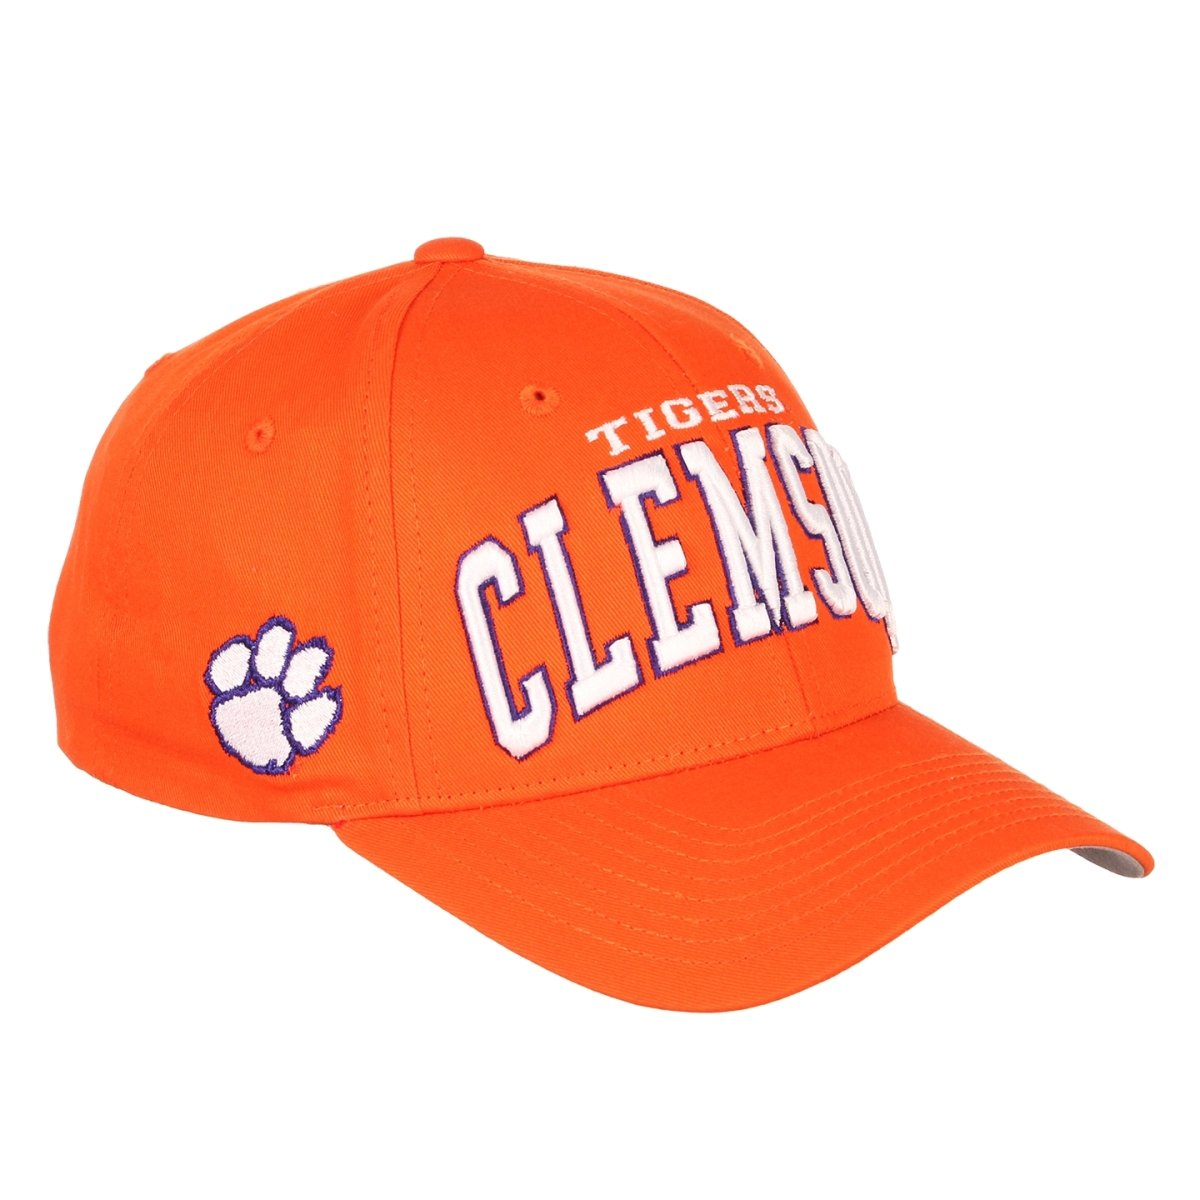 Clemson Tigers Super 19 Snapback Hat With Tigers of Clemson Arch and White Paw on Side - Mr. Knickerbocker